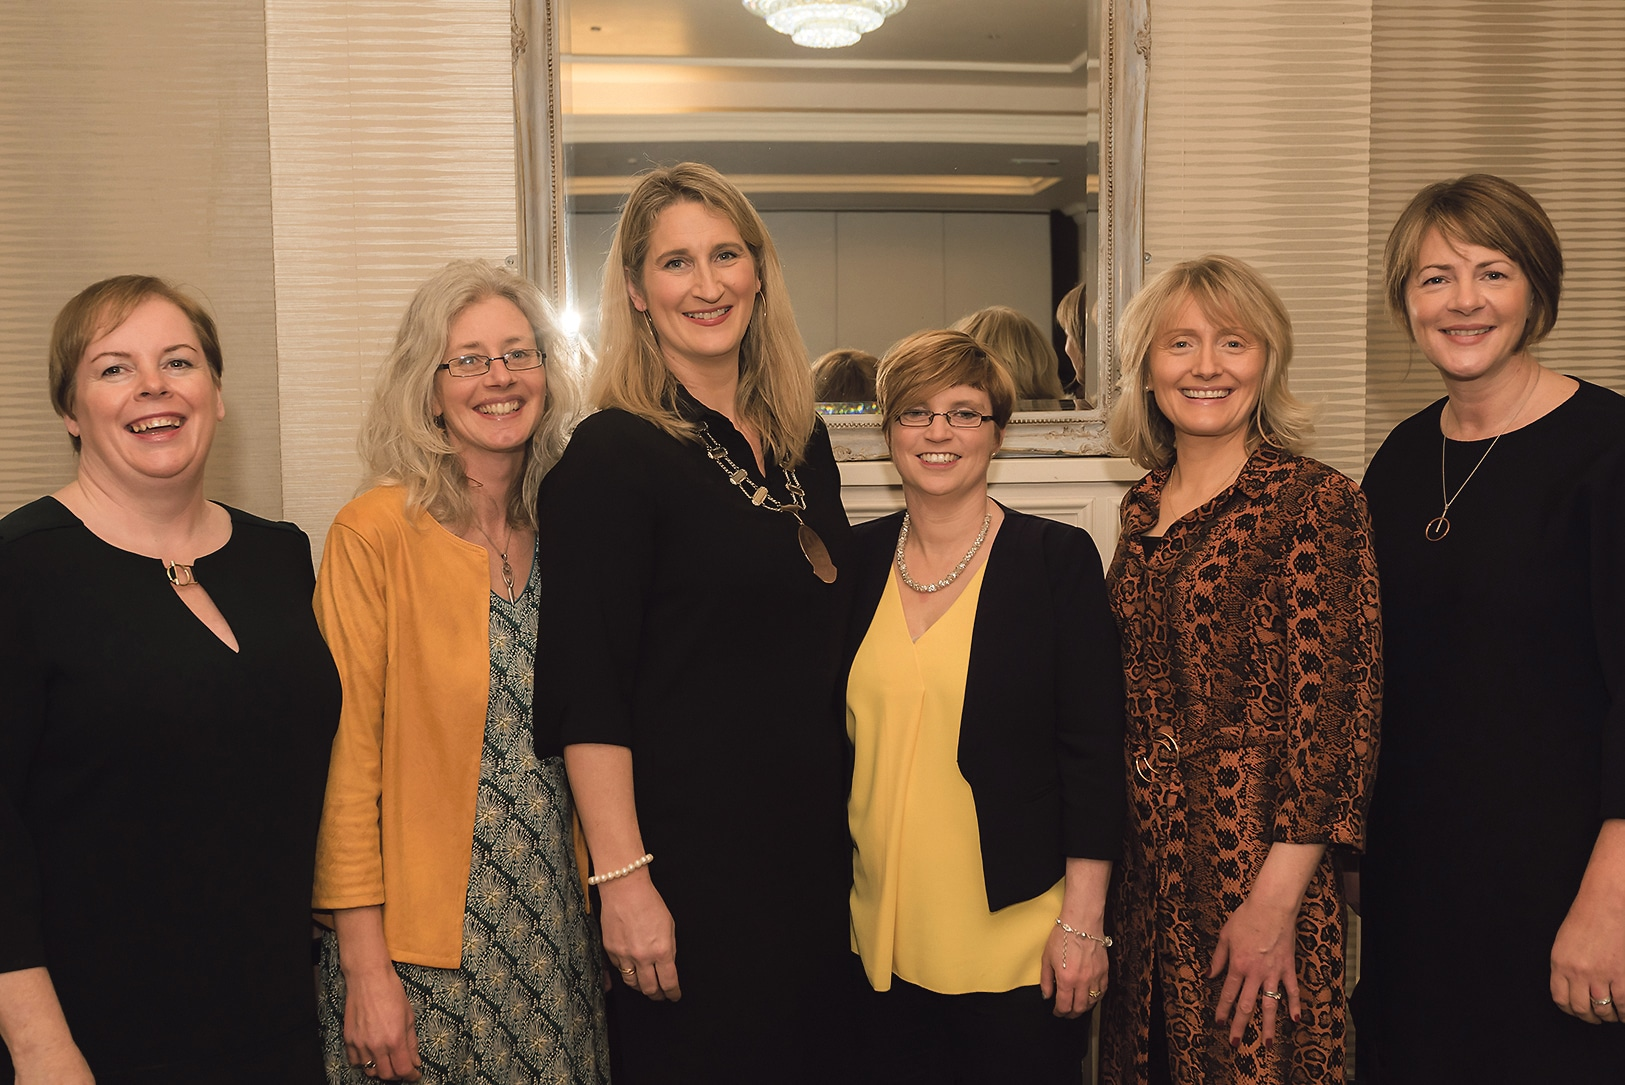 West Cork business women get goal ready for 2020